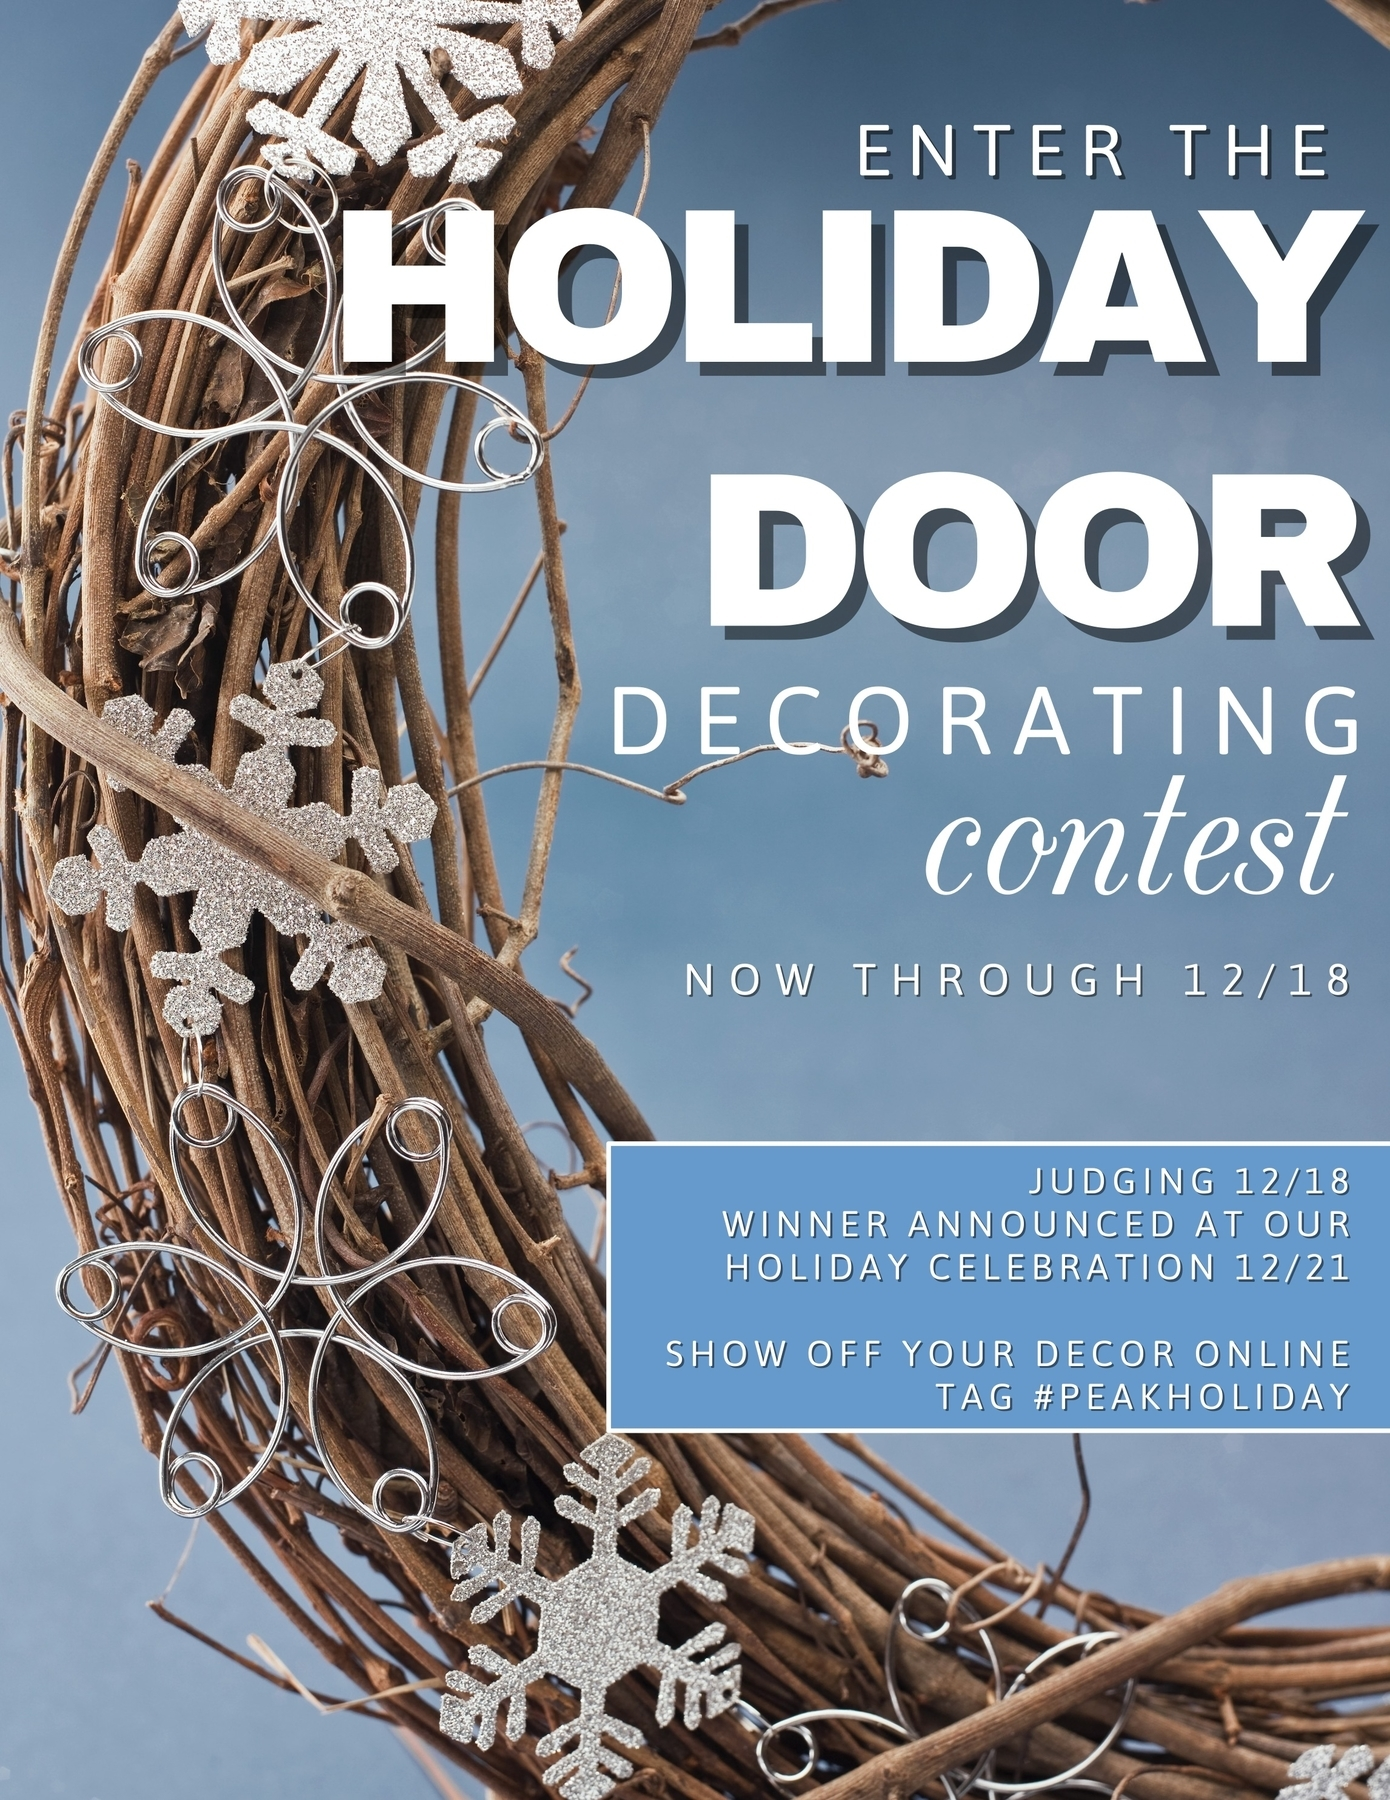 Door Decorating Contest at Satyr Hill Apartments